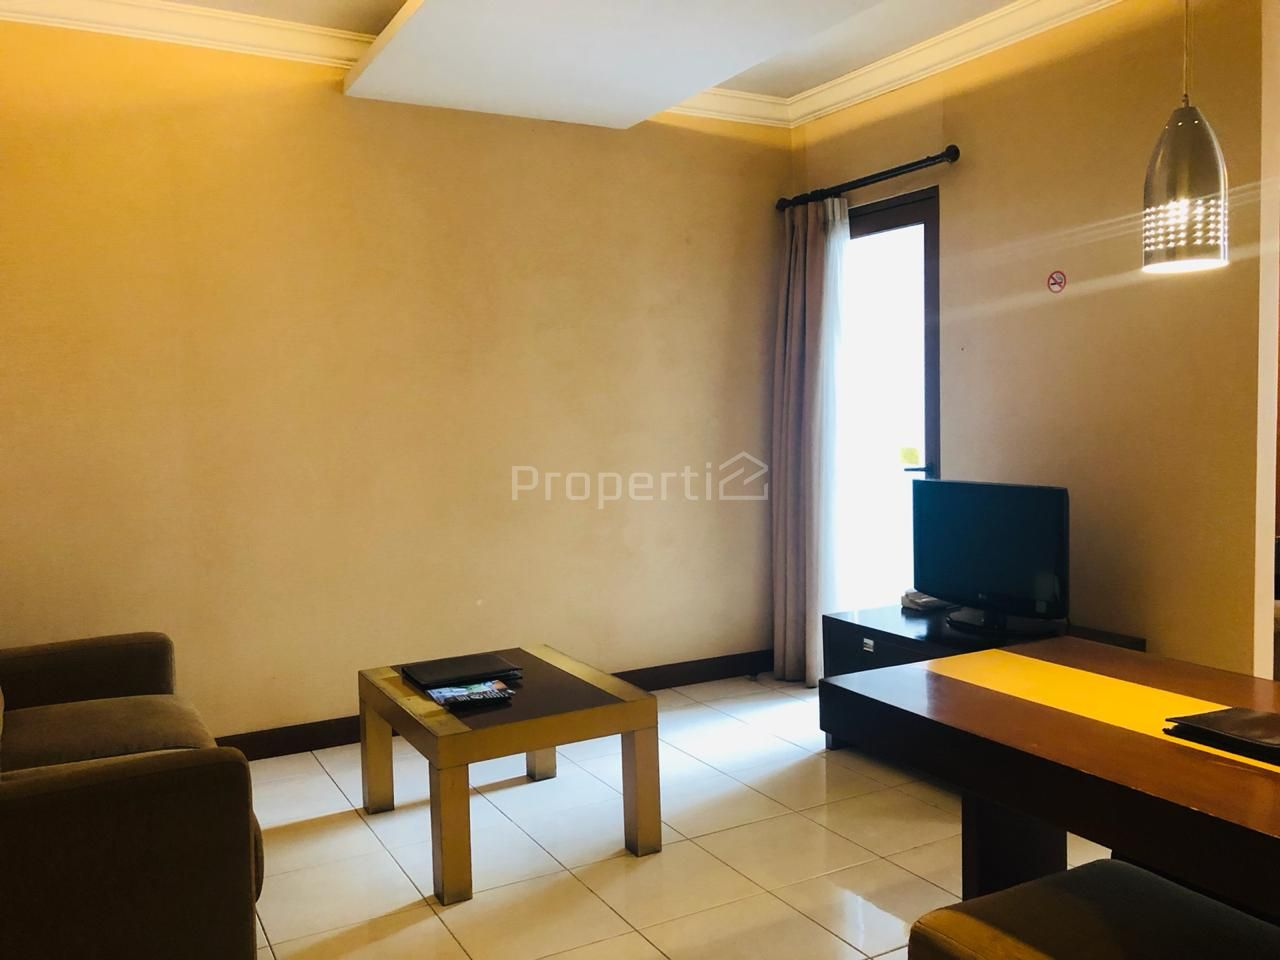 1BR Apartment Unit at The Majesty, 1st Floor, Kota Bandung